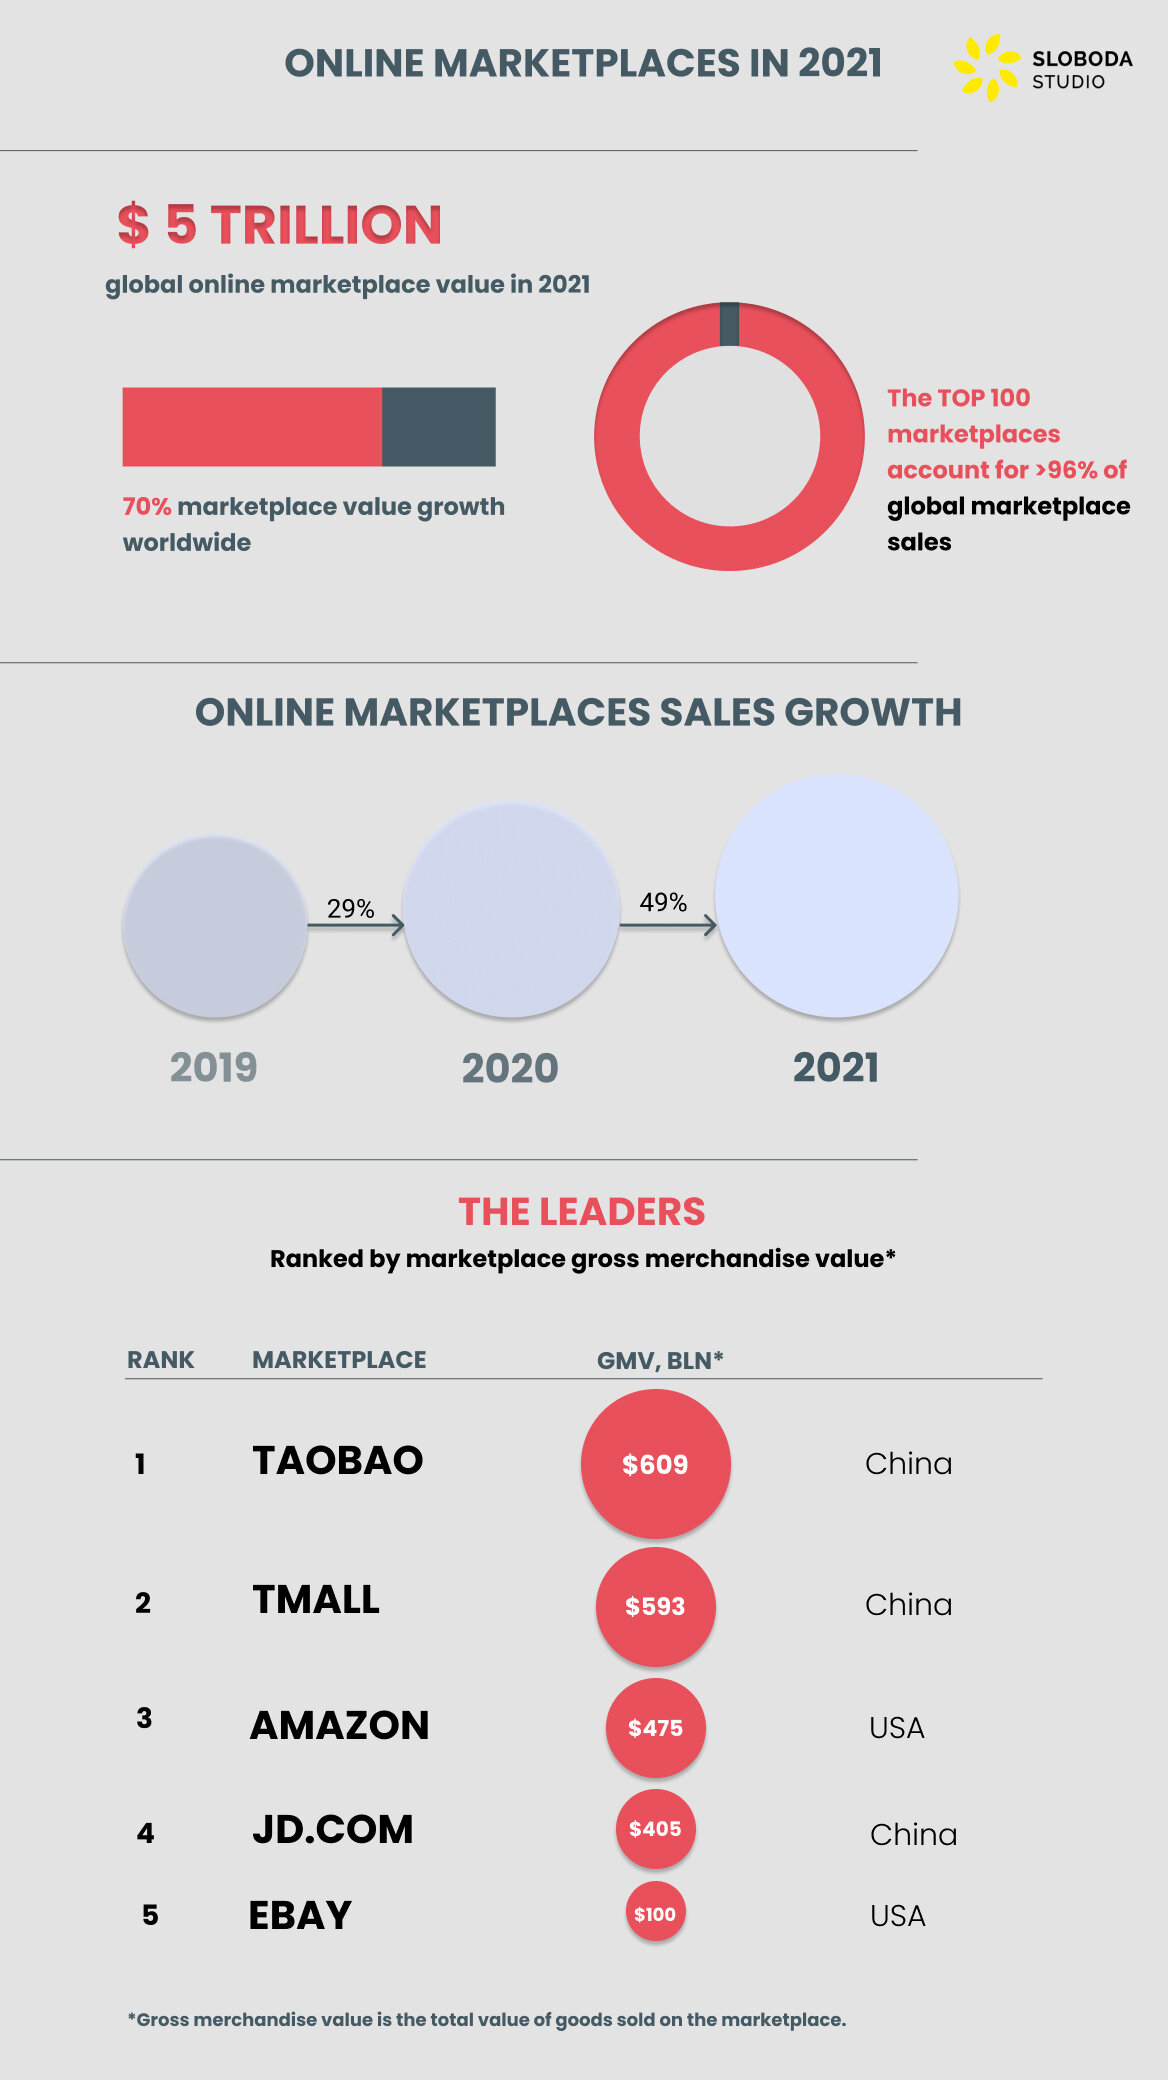 online marketplaces in 2021